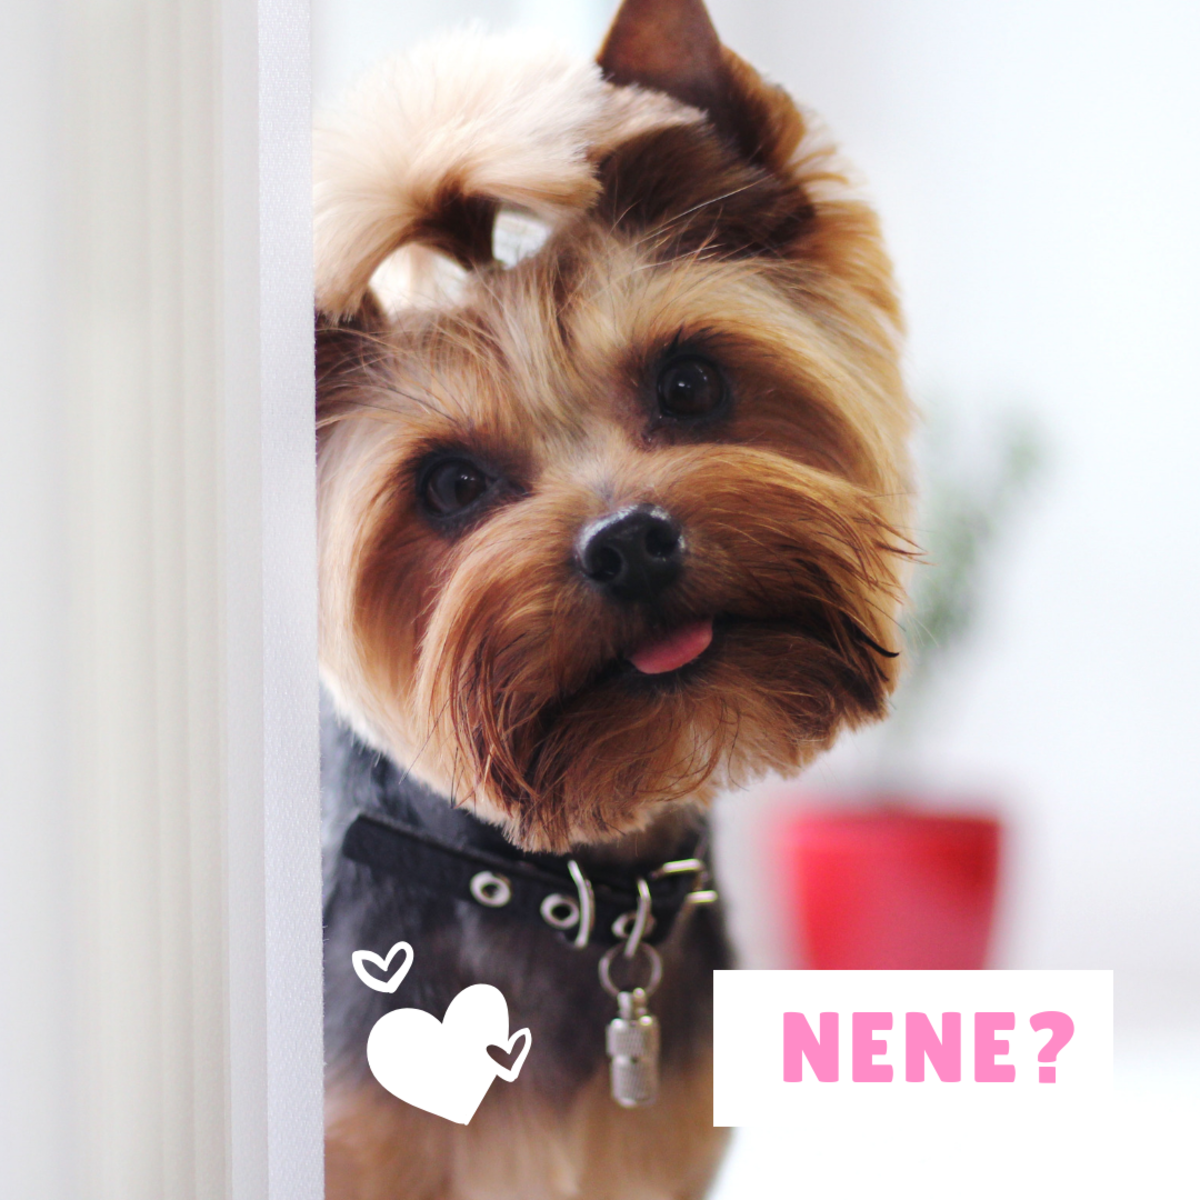 Is your adorable Yorkie a Nene?